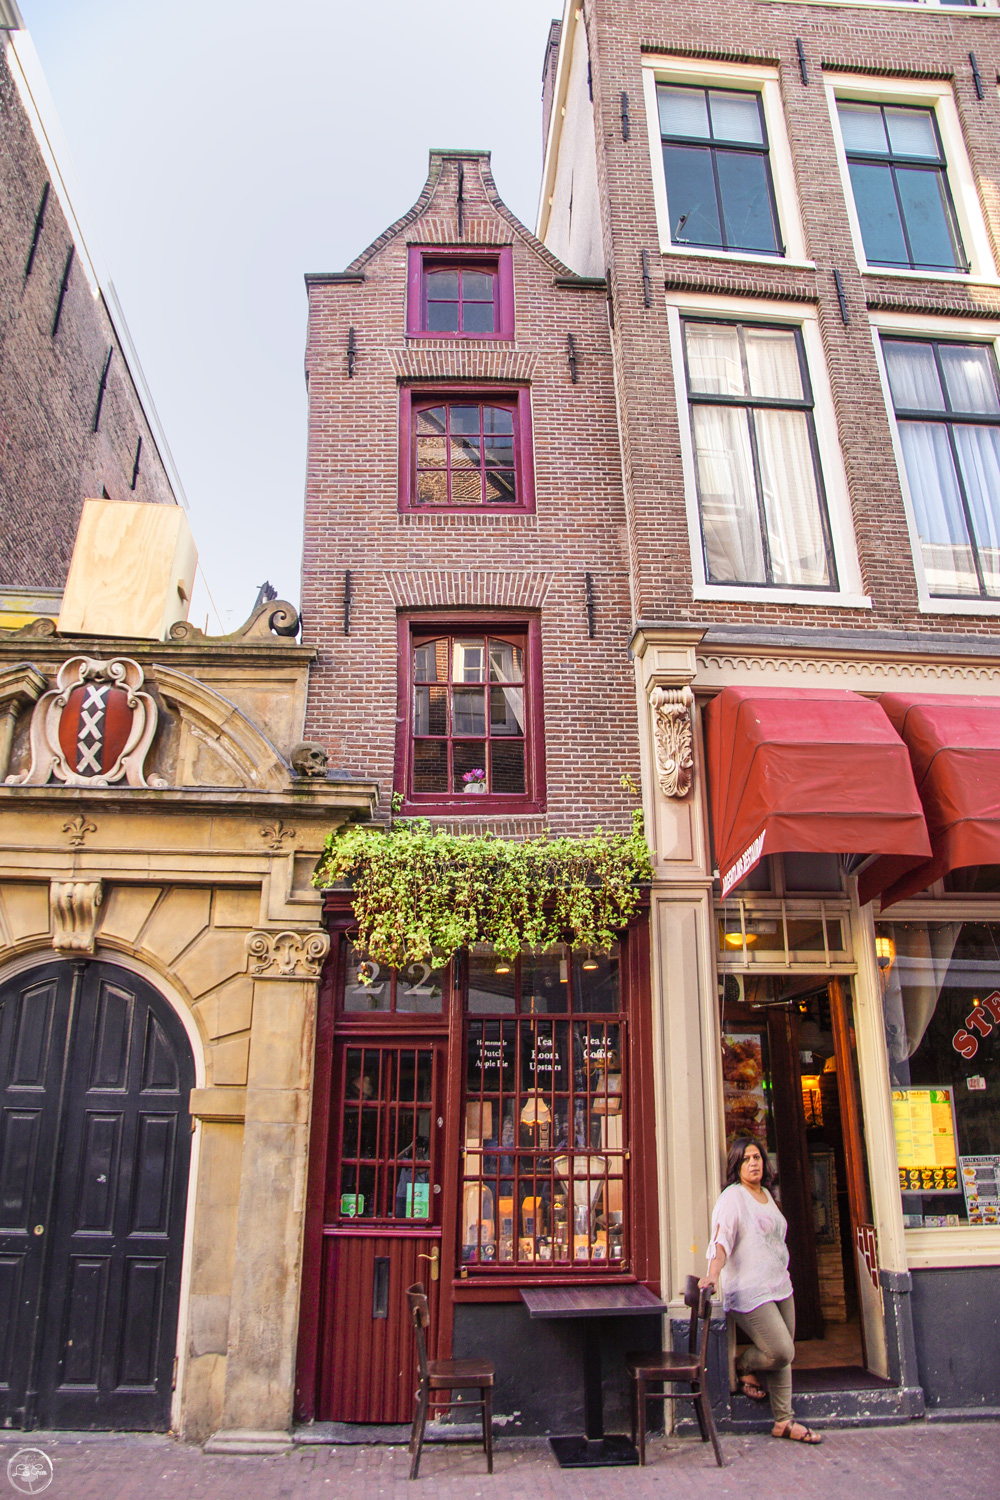 The Smallest House, Amsterdam